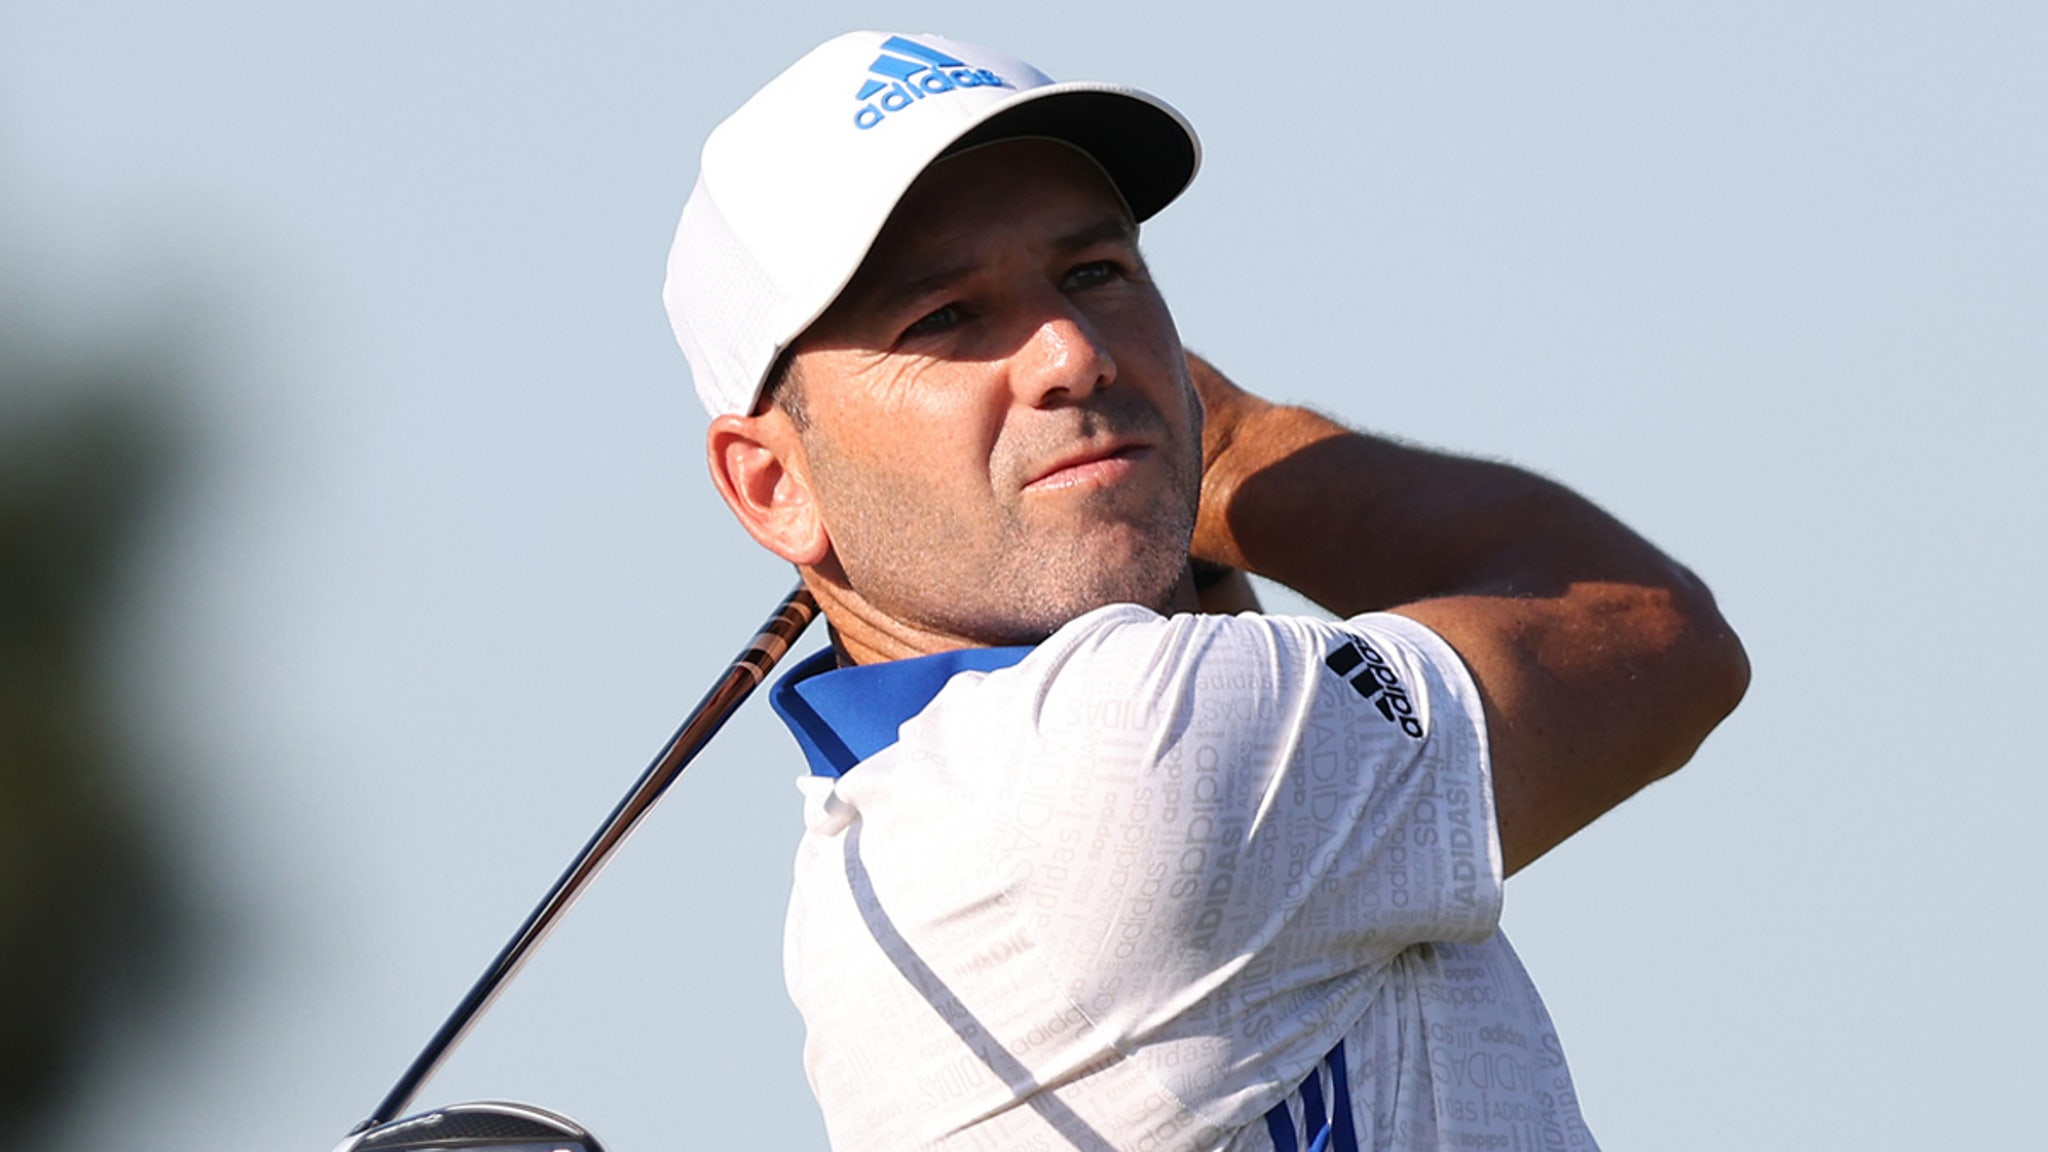 Sergio Garcia Tests Positive for COVID Withdraws from The Masters